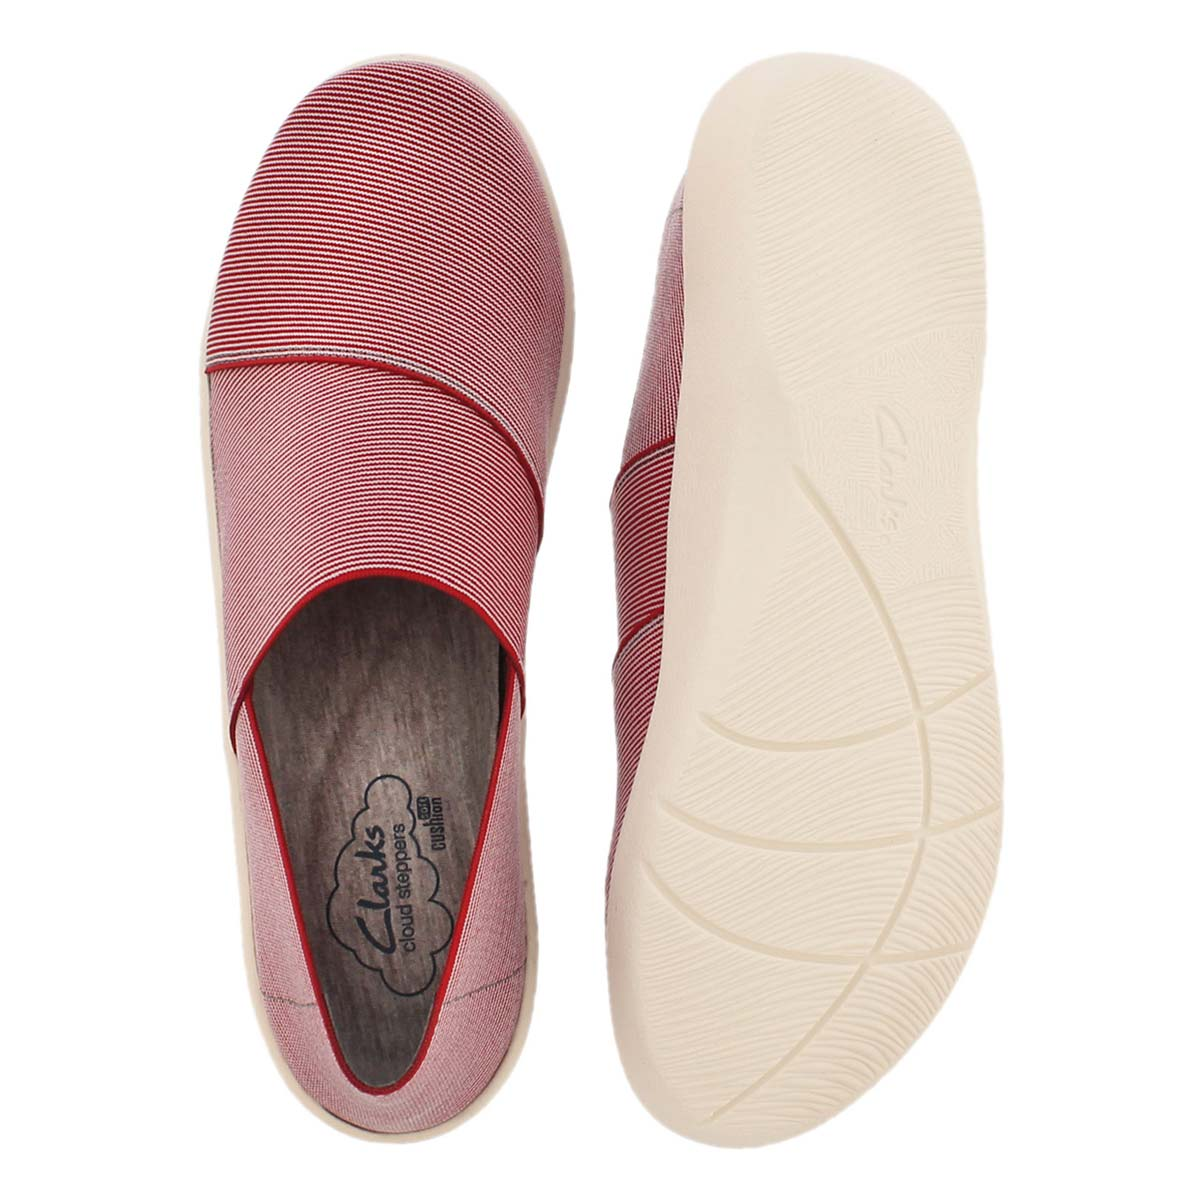 Lds Sillian Firn red casual slip on